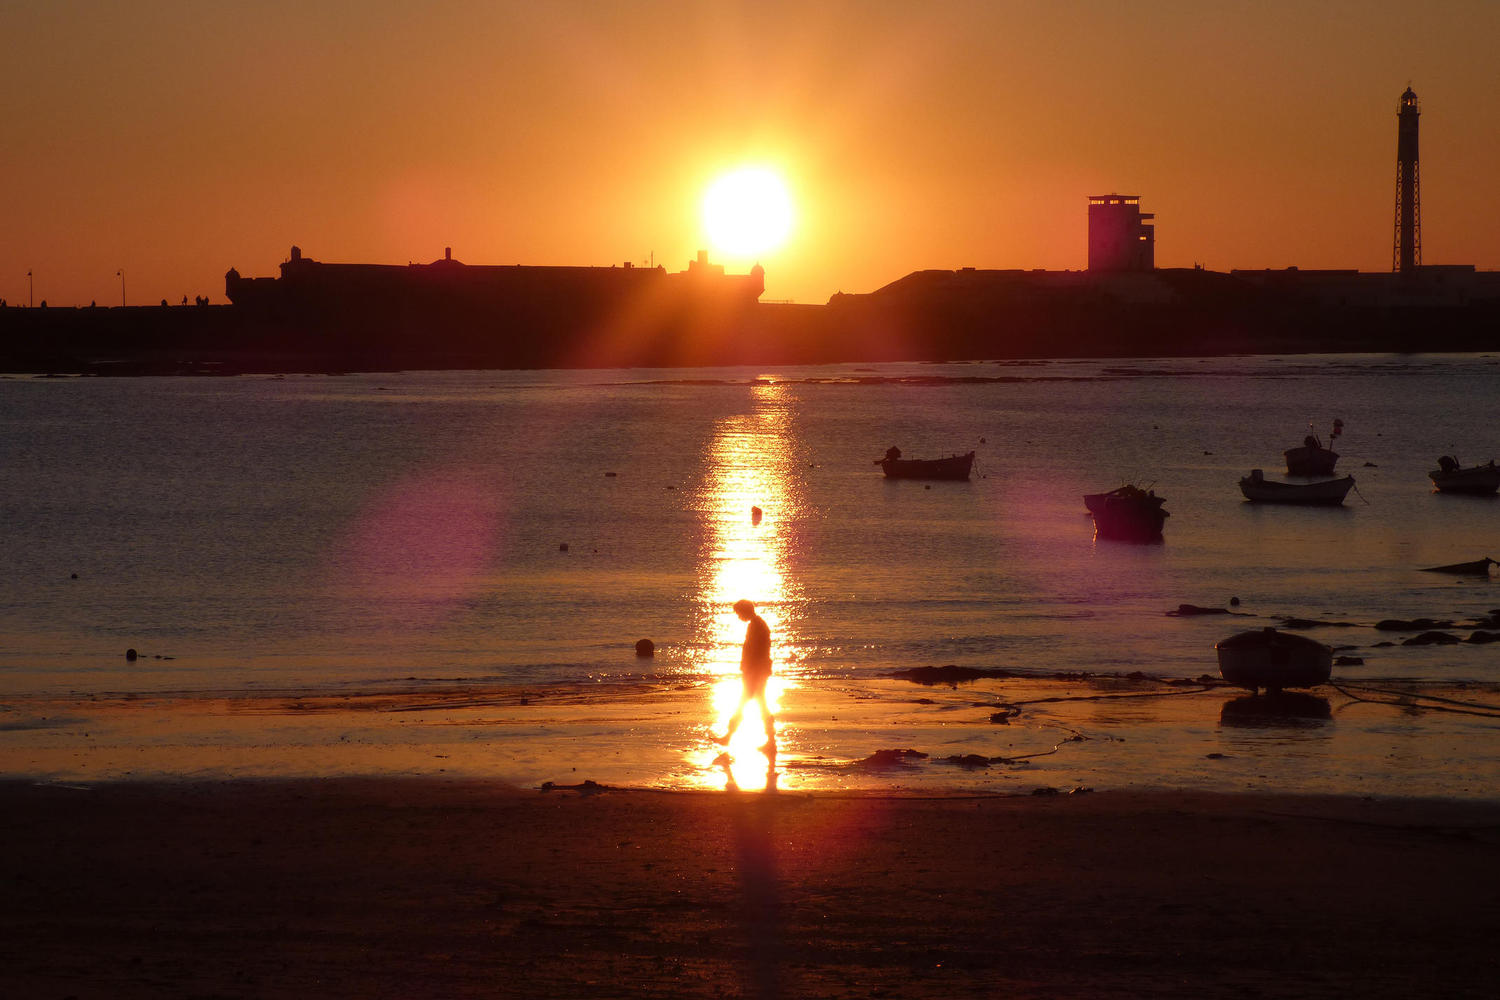 Sunset in La Caleta beach in Cadiz